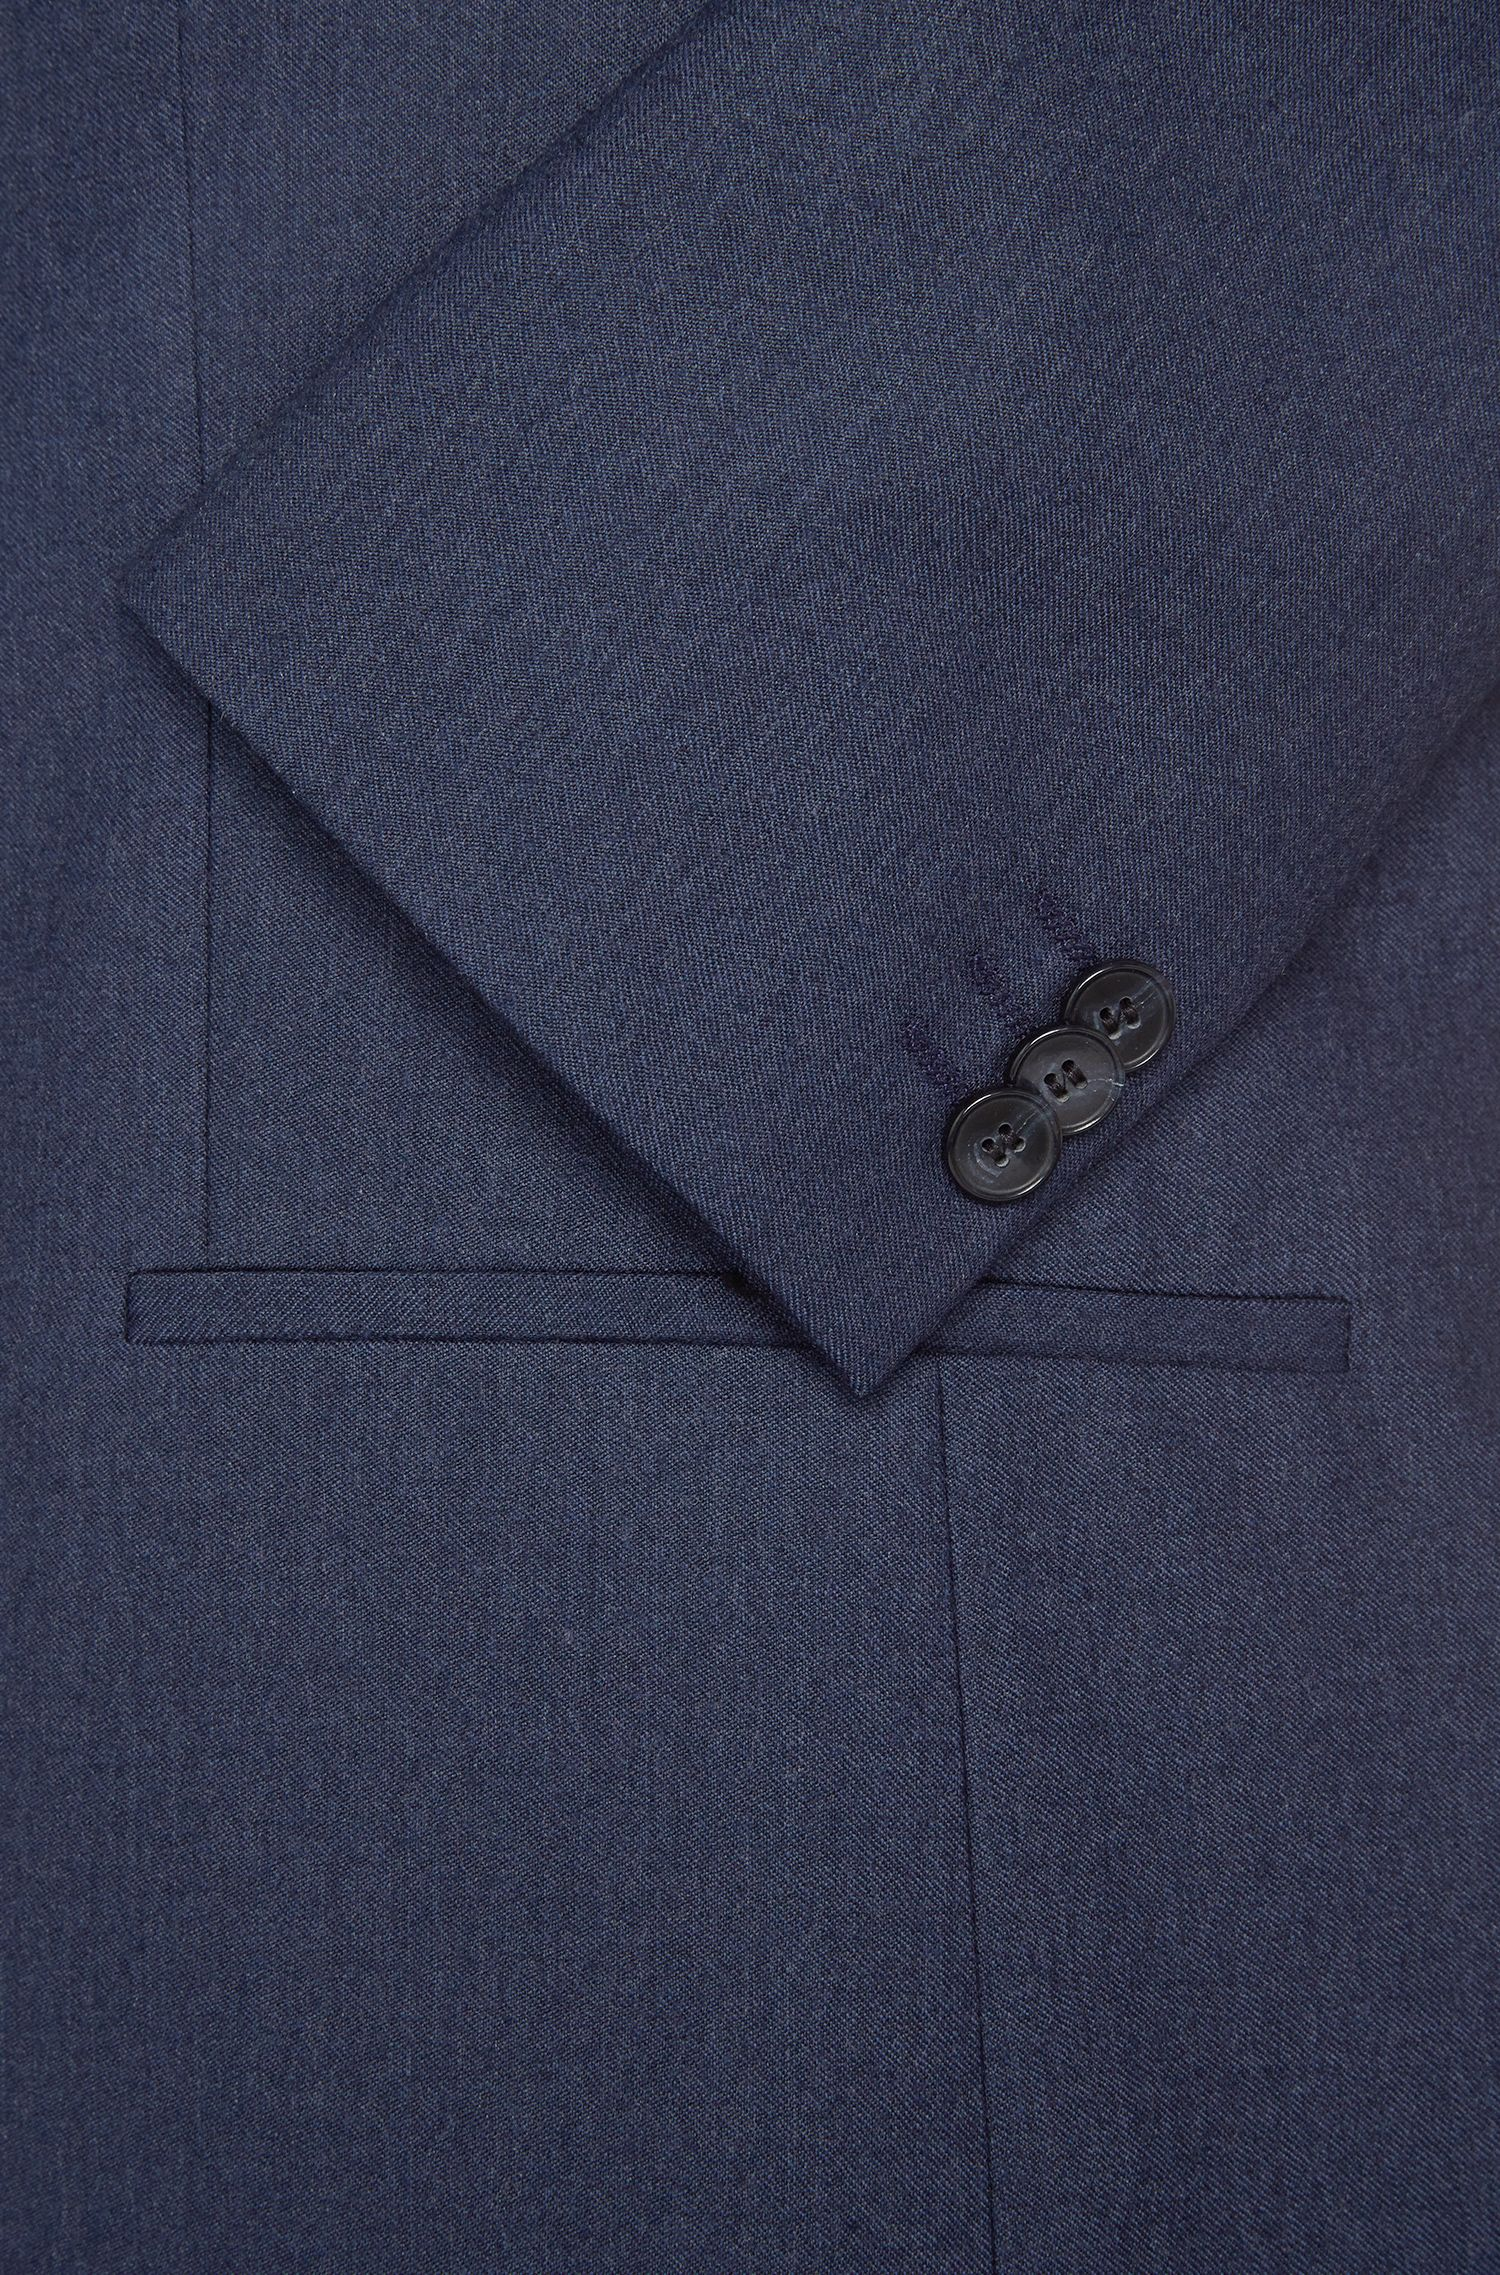 Slim-Fit Anzug aus Schurwolle in Denim-Optik: 'Adan1/Hallins'